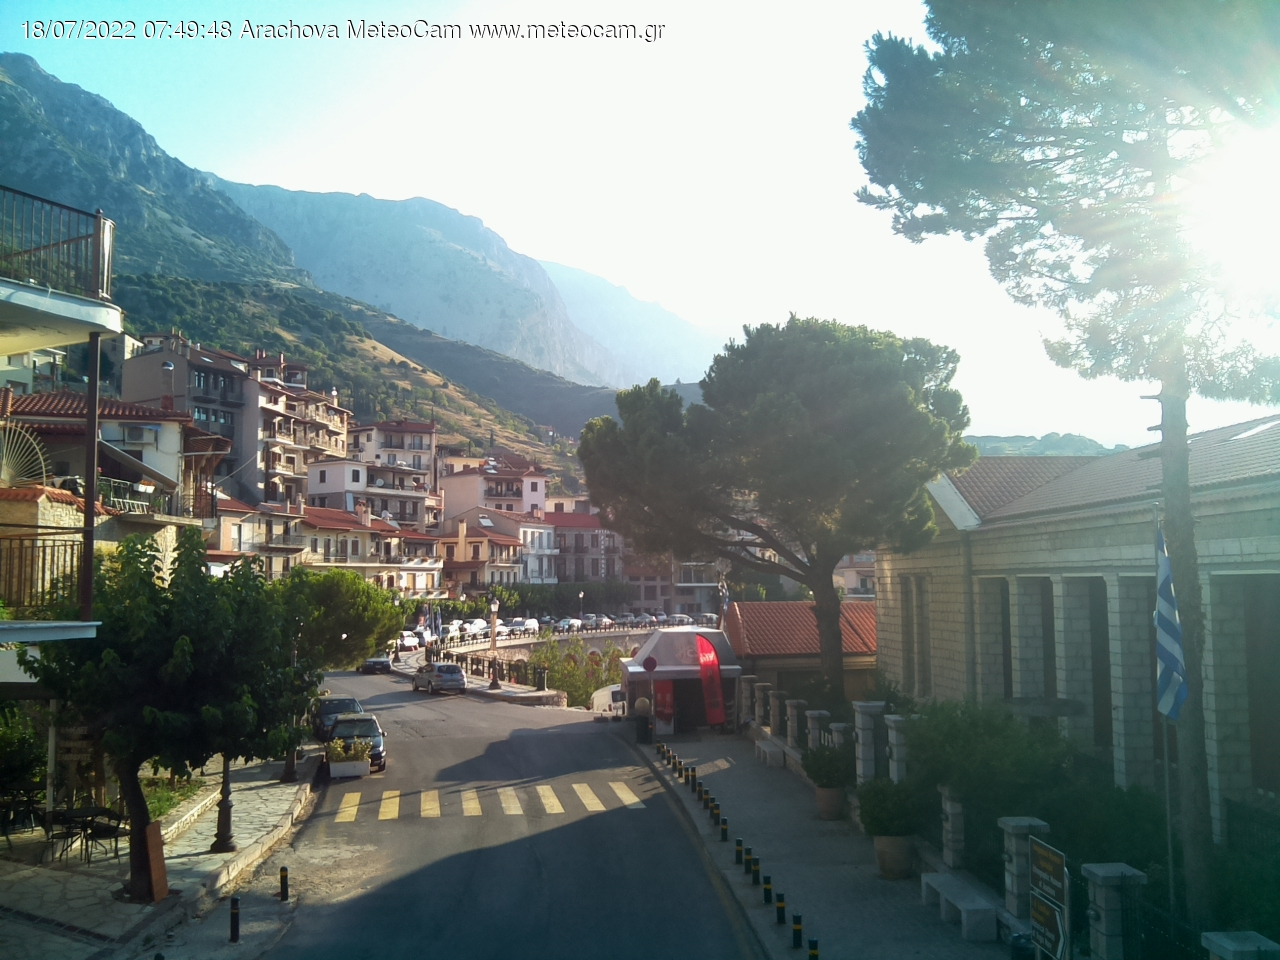 webcam city Arachova